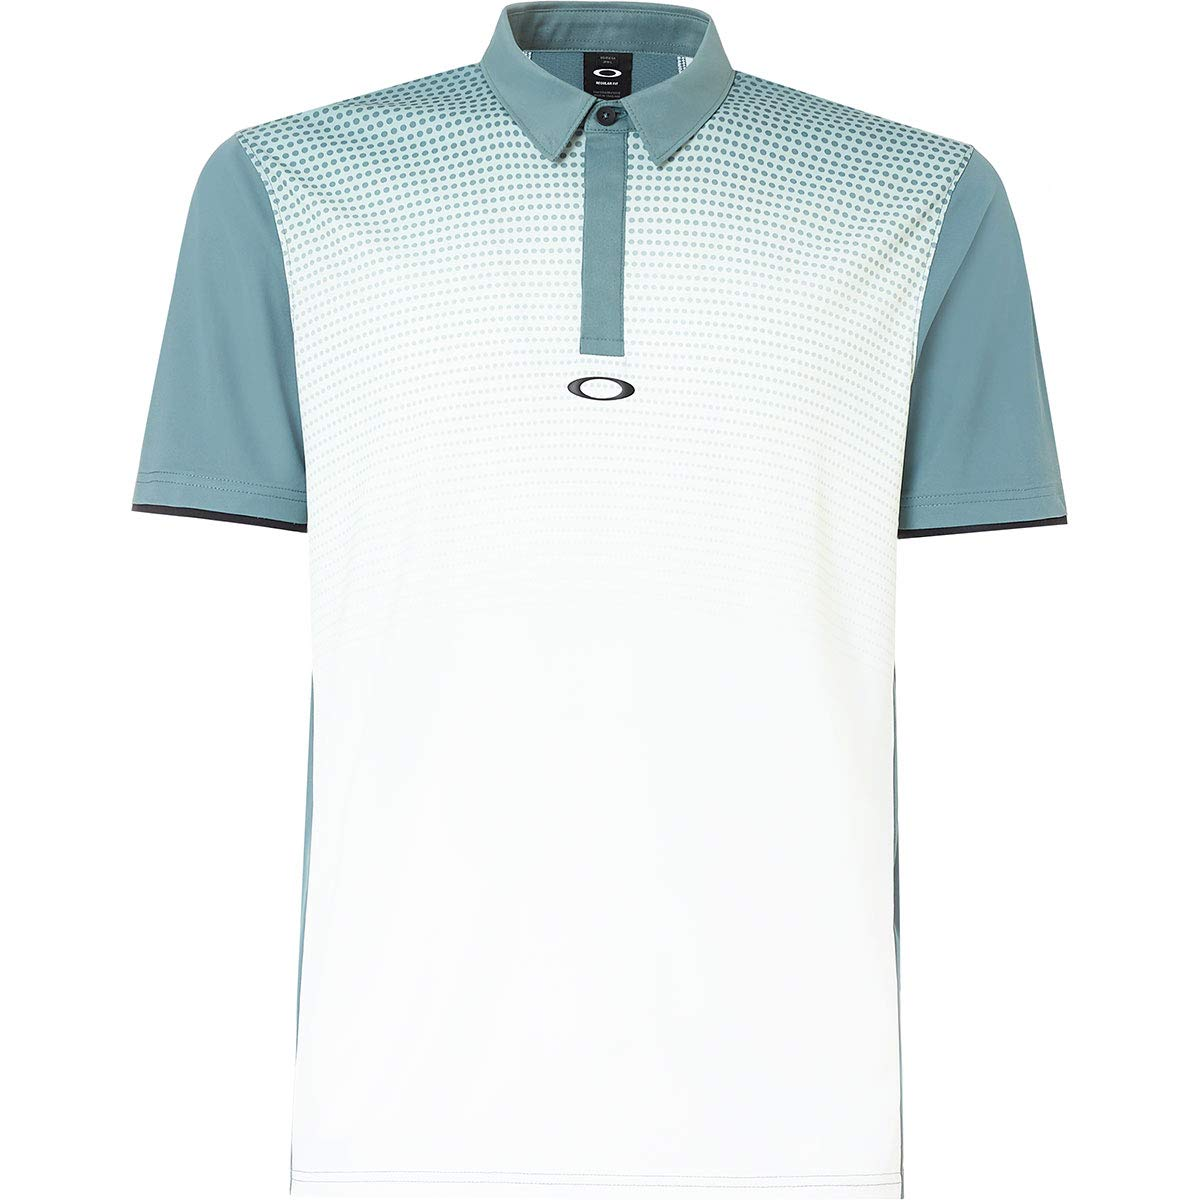 Oakley Mens Polo Shirt Ss Poliammide, ore, XS: Amazon.es: Ropa y ...